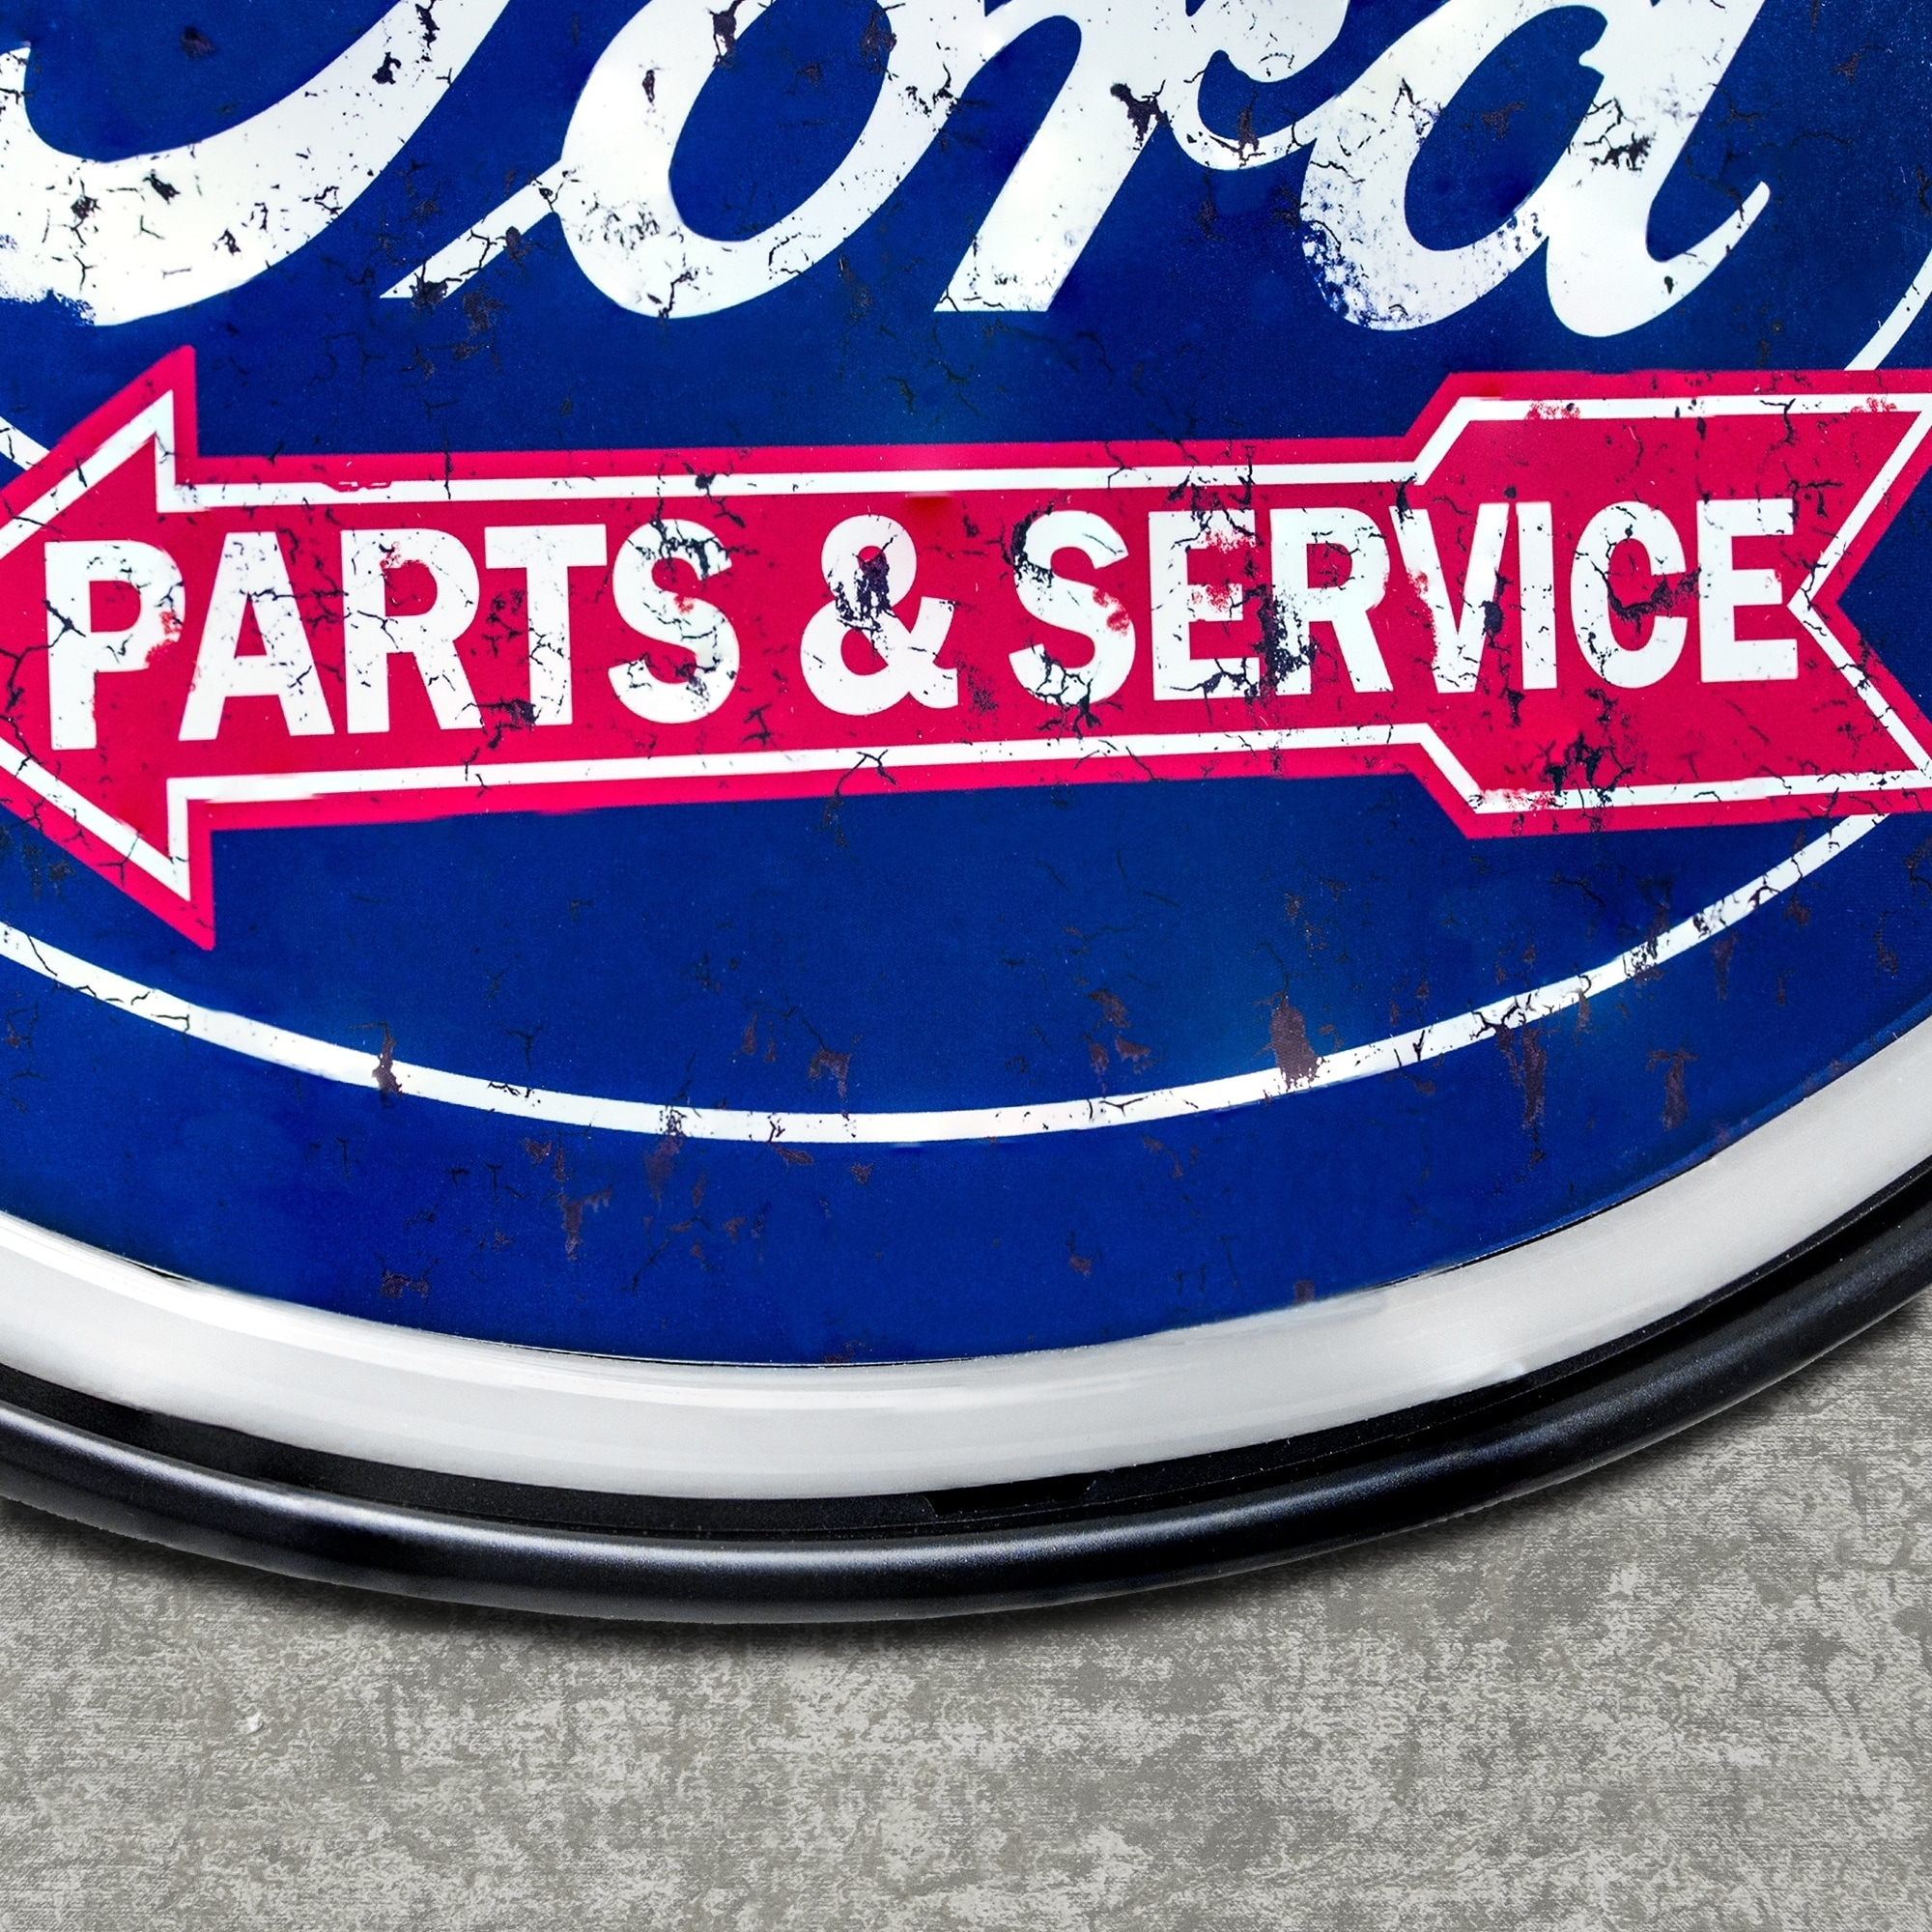 American Art Decor Vintage Ford Oval Shaped LED Light Up Sign Wall Decor  for Man Cave Bar Garage